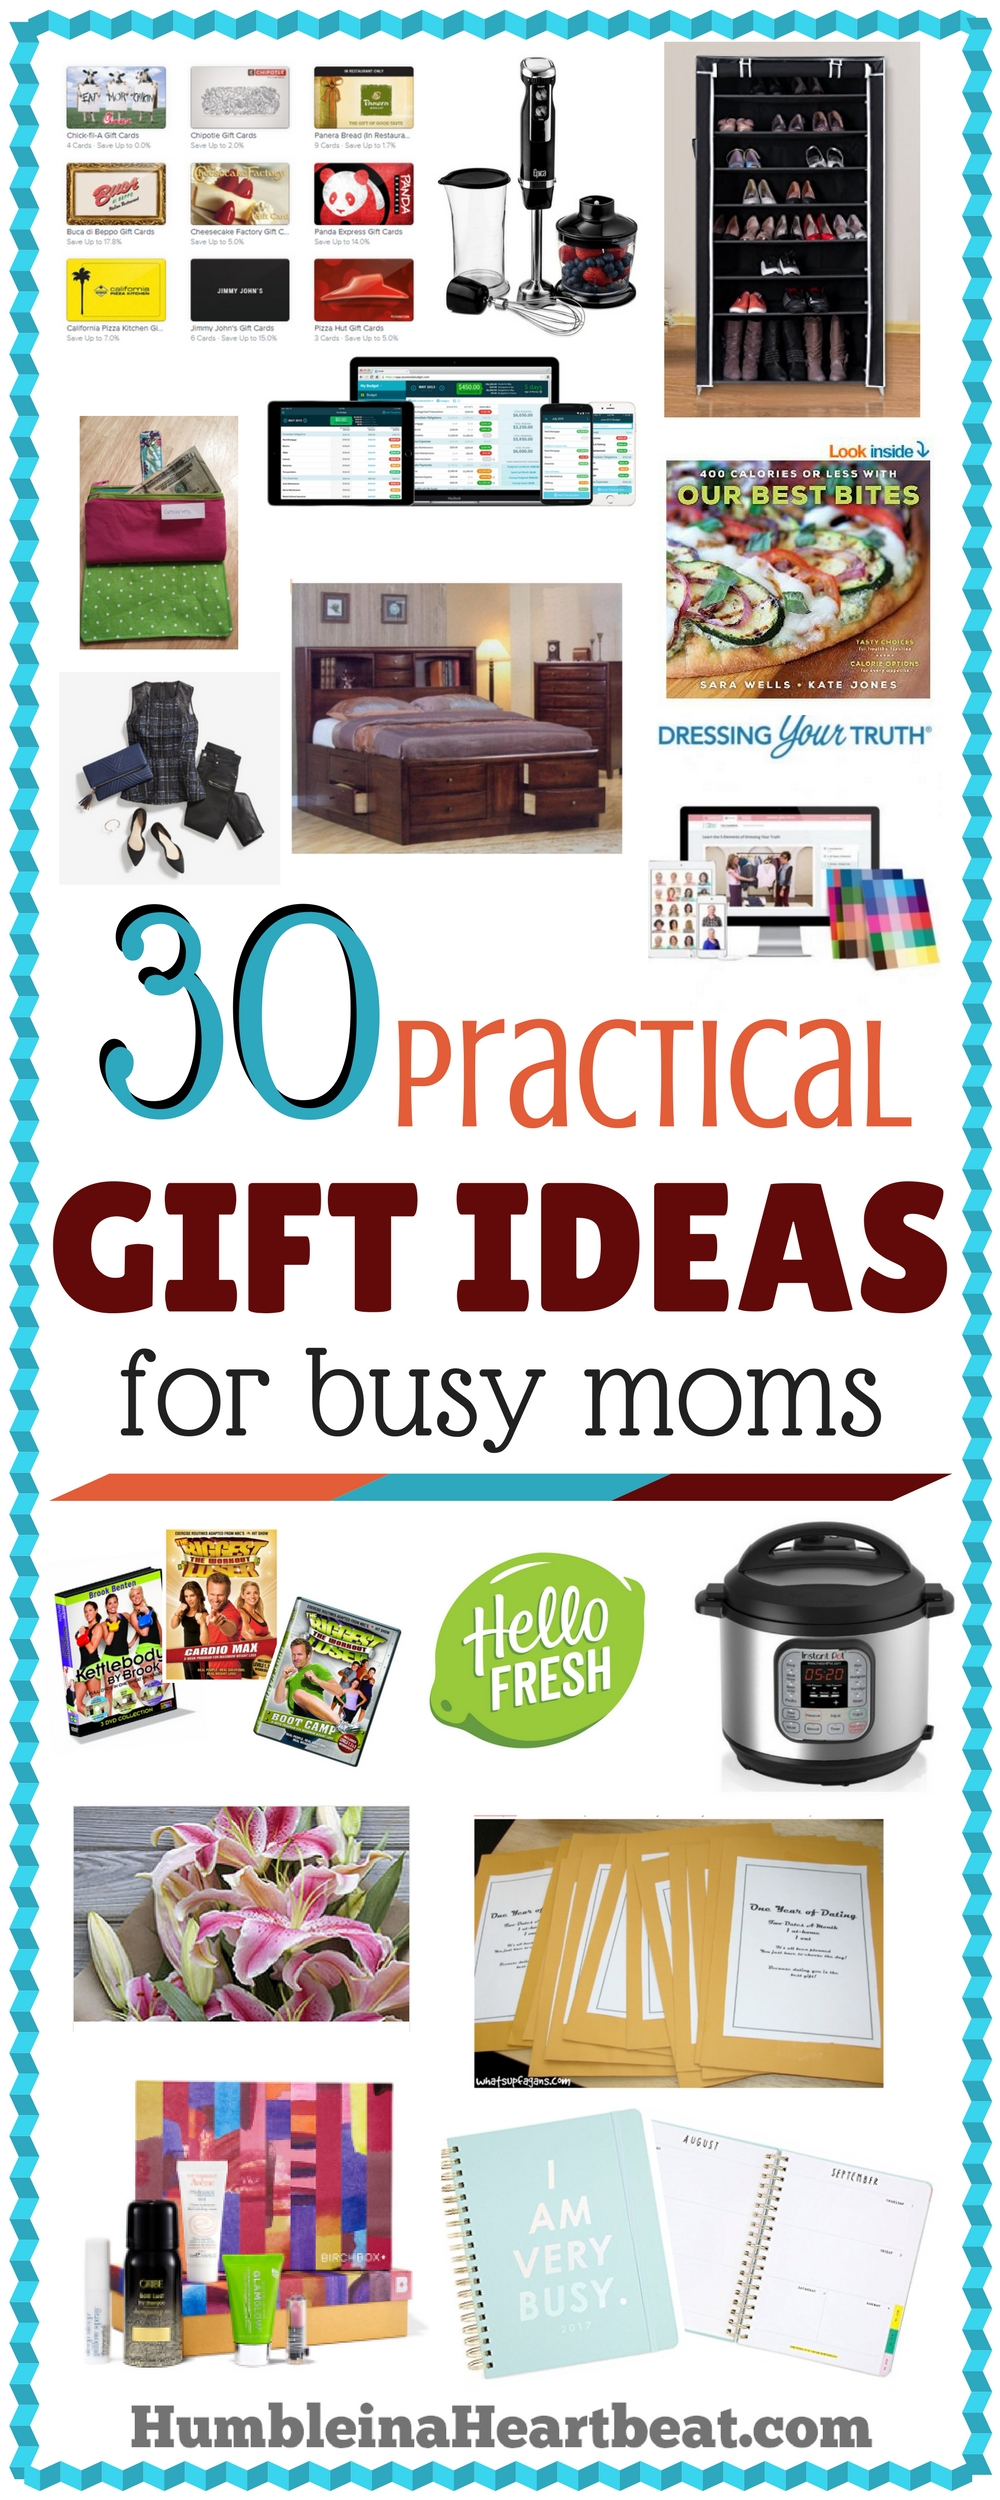 The Ultimate Gift Guide for Practical, Busy Moms | Feeding Our Flamingos